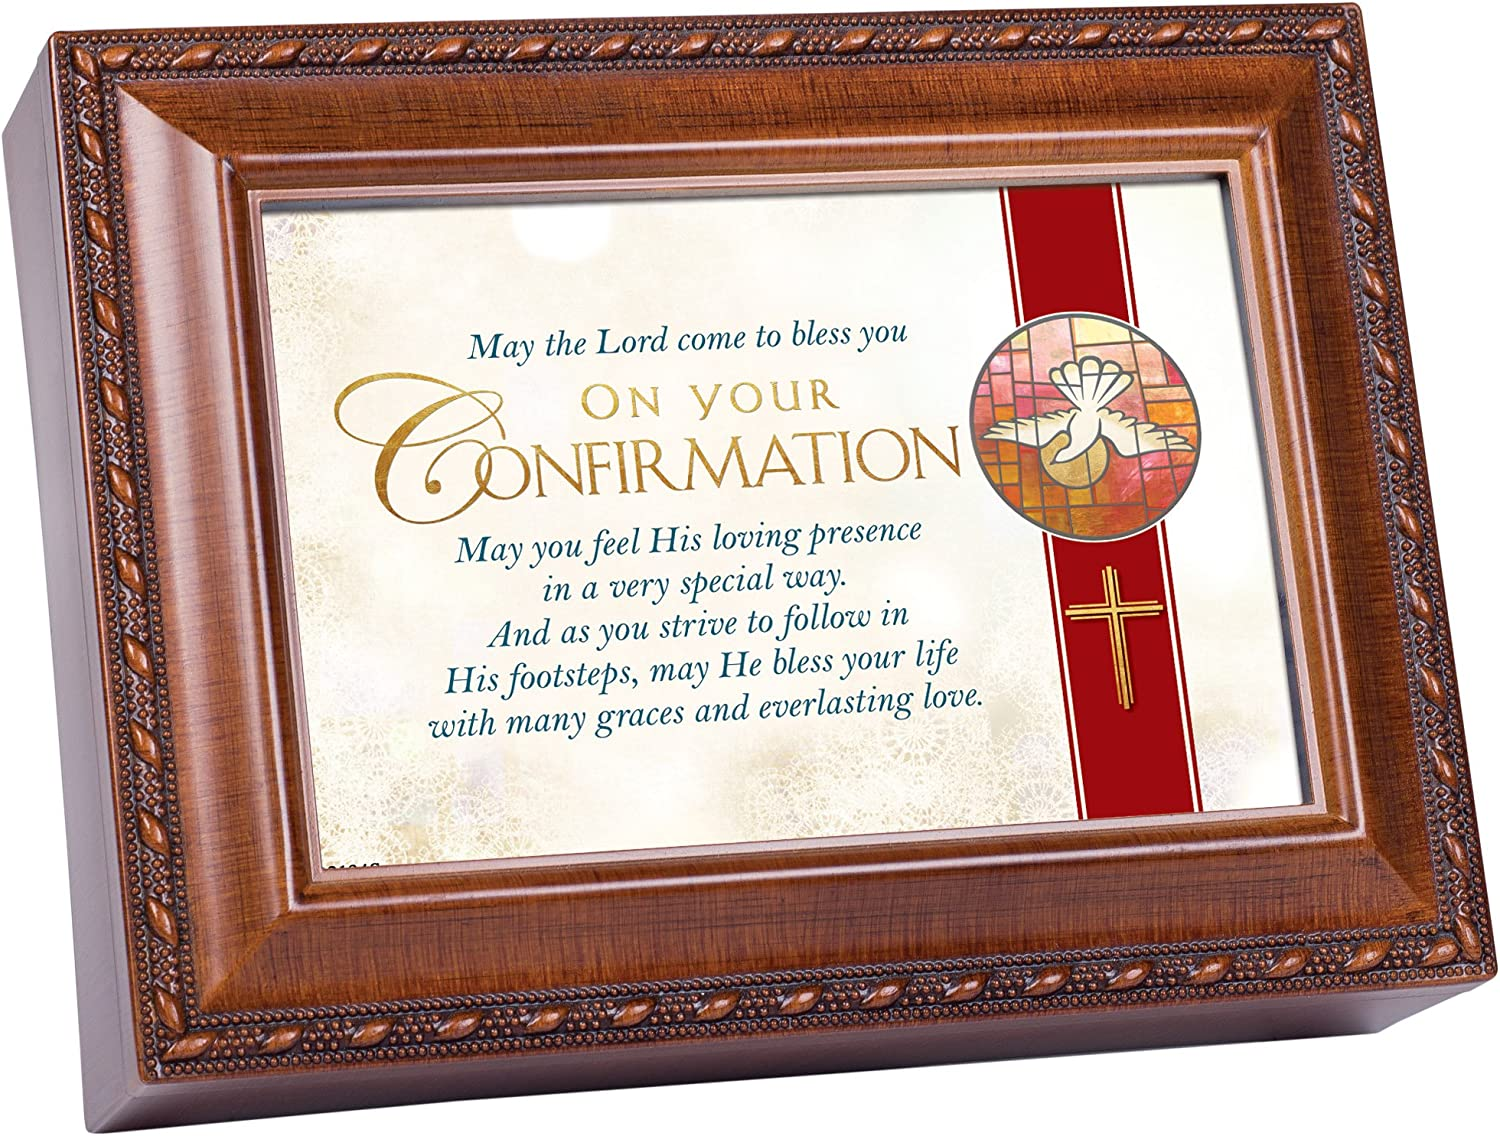 Cottage Garden Bless You On Your Confirmation Woodgrain Keepsake Music Box Plays On Eagle's Wings